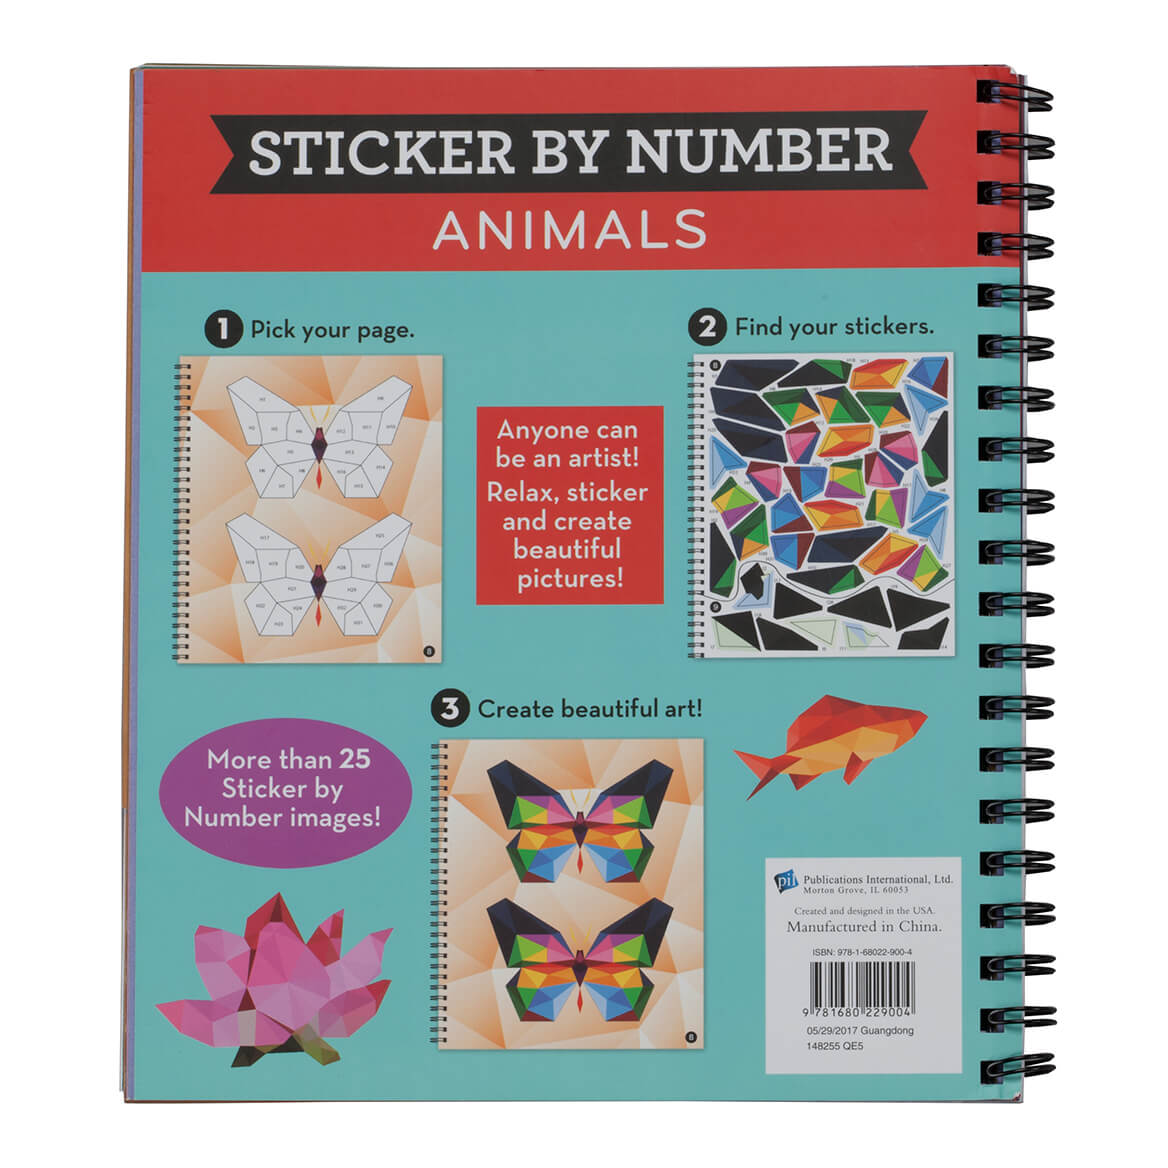 Brain Games Sticker By Number Animals - Sticker Book - Miles Kimball